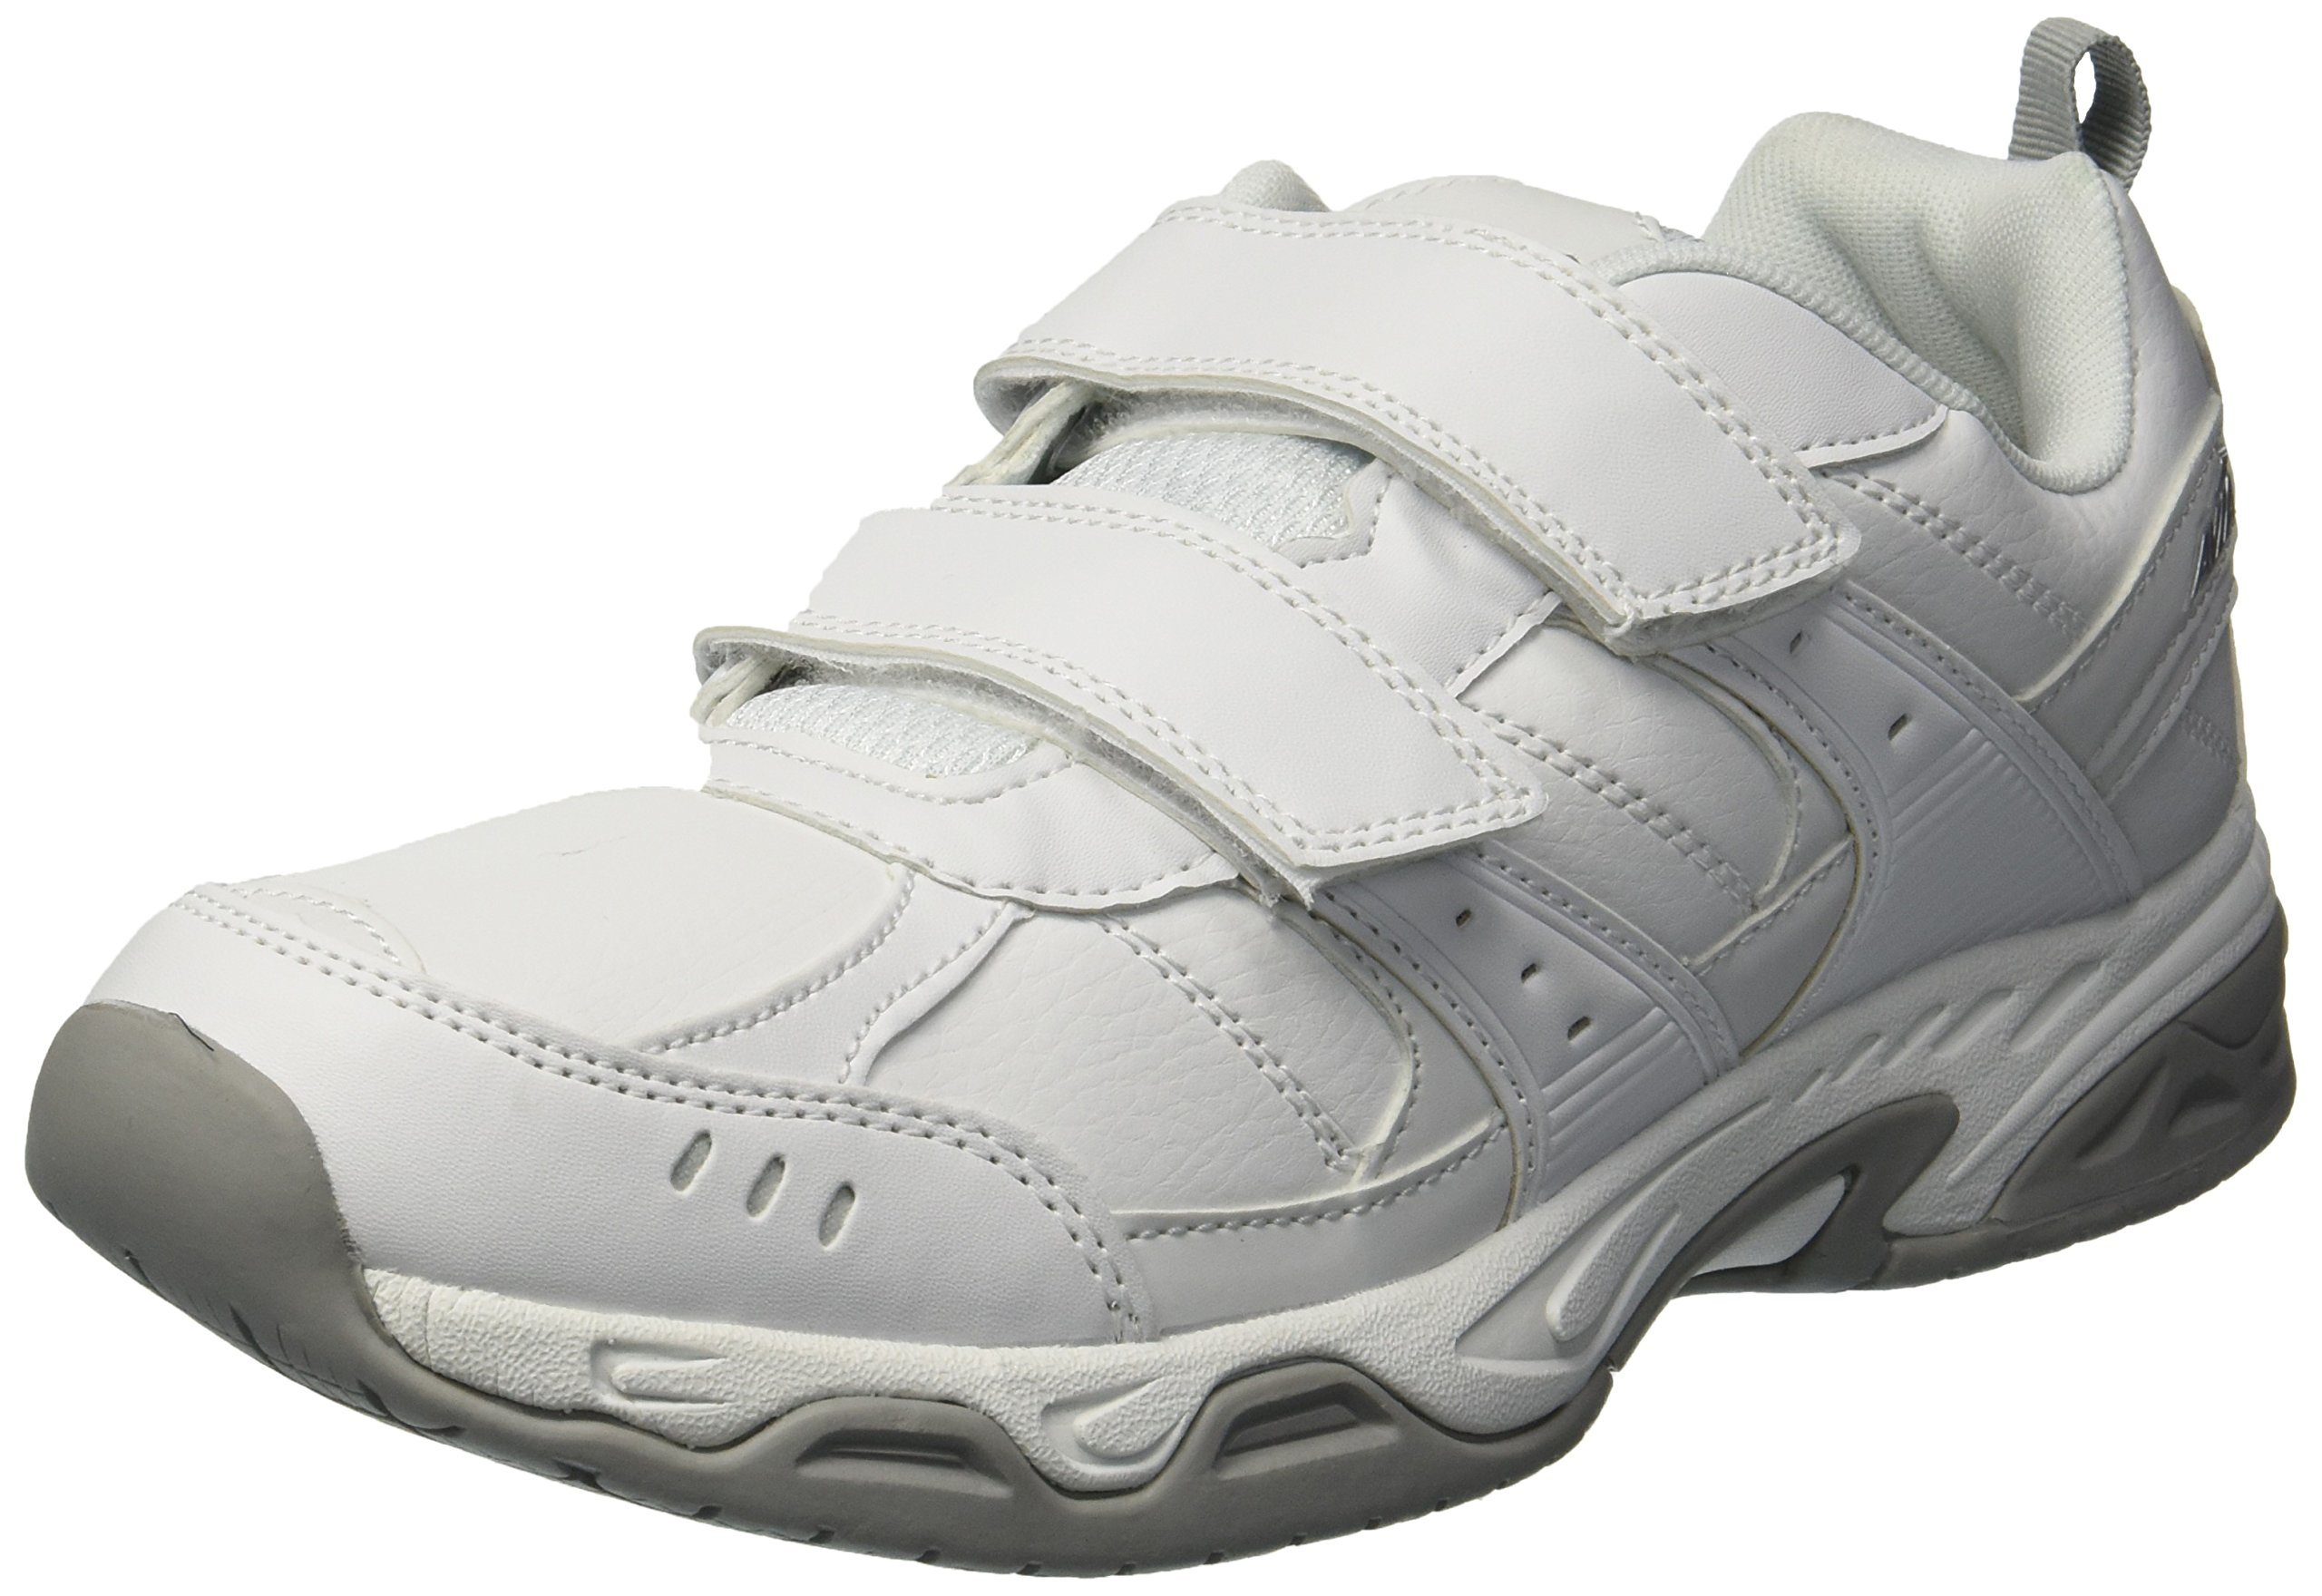 Avia Men's Avi-Union II Strap Food Service Shoe, White/Chrome Silver, 11.5 Medium US by Avia